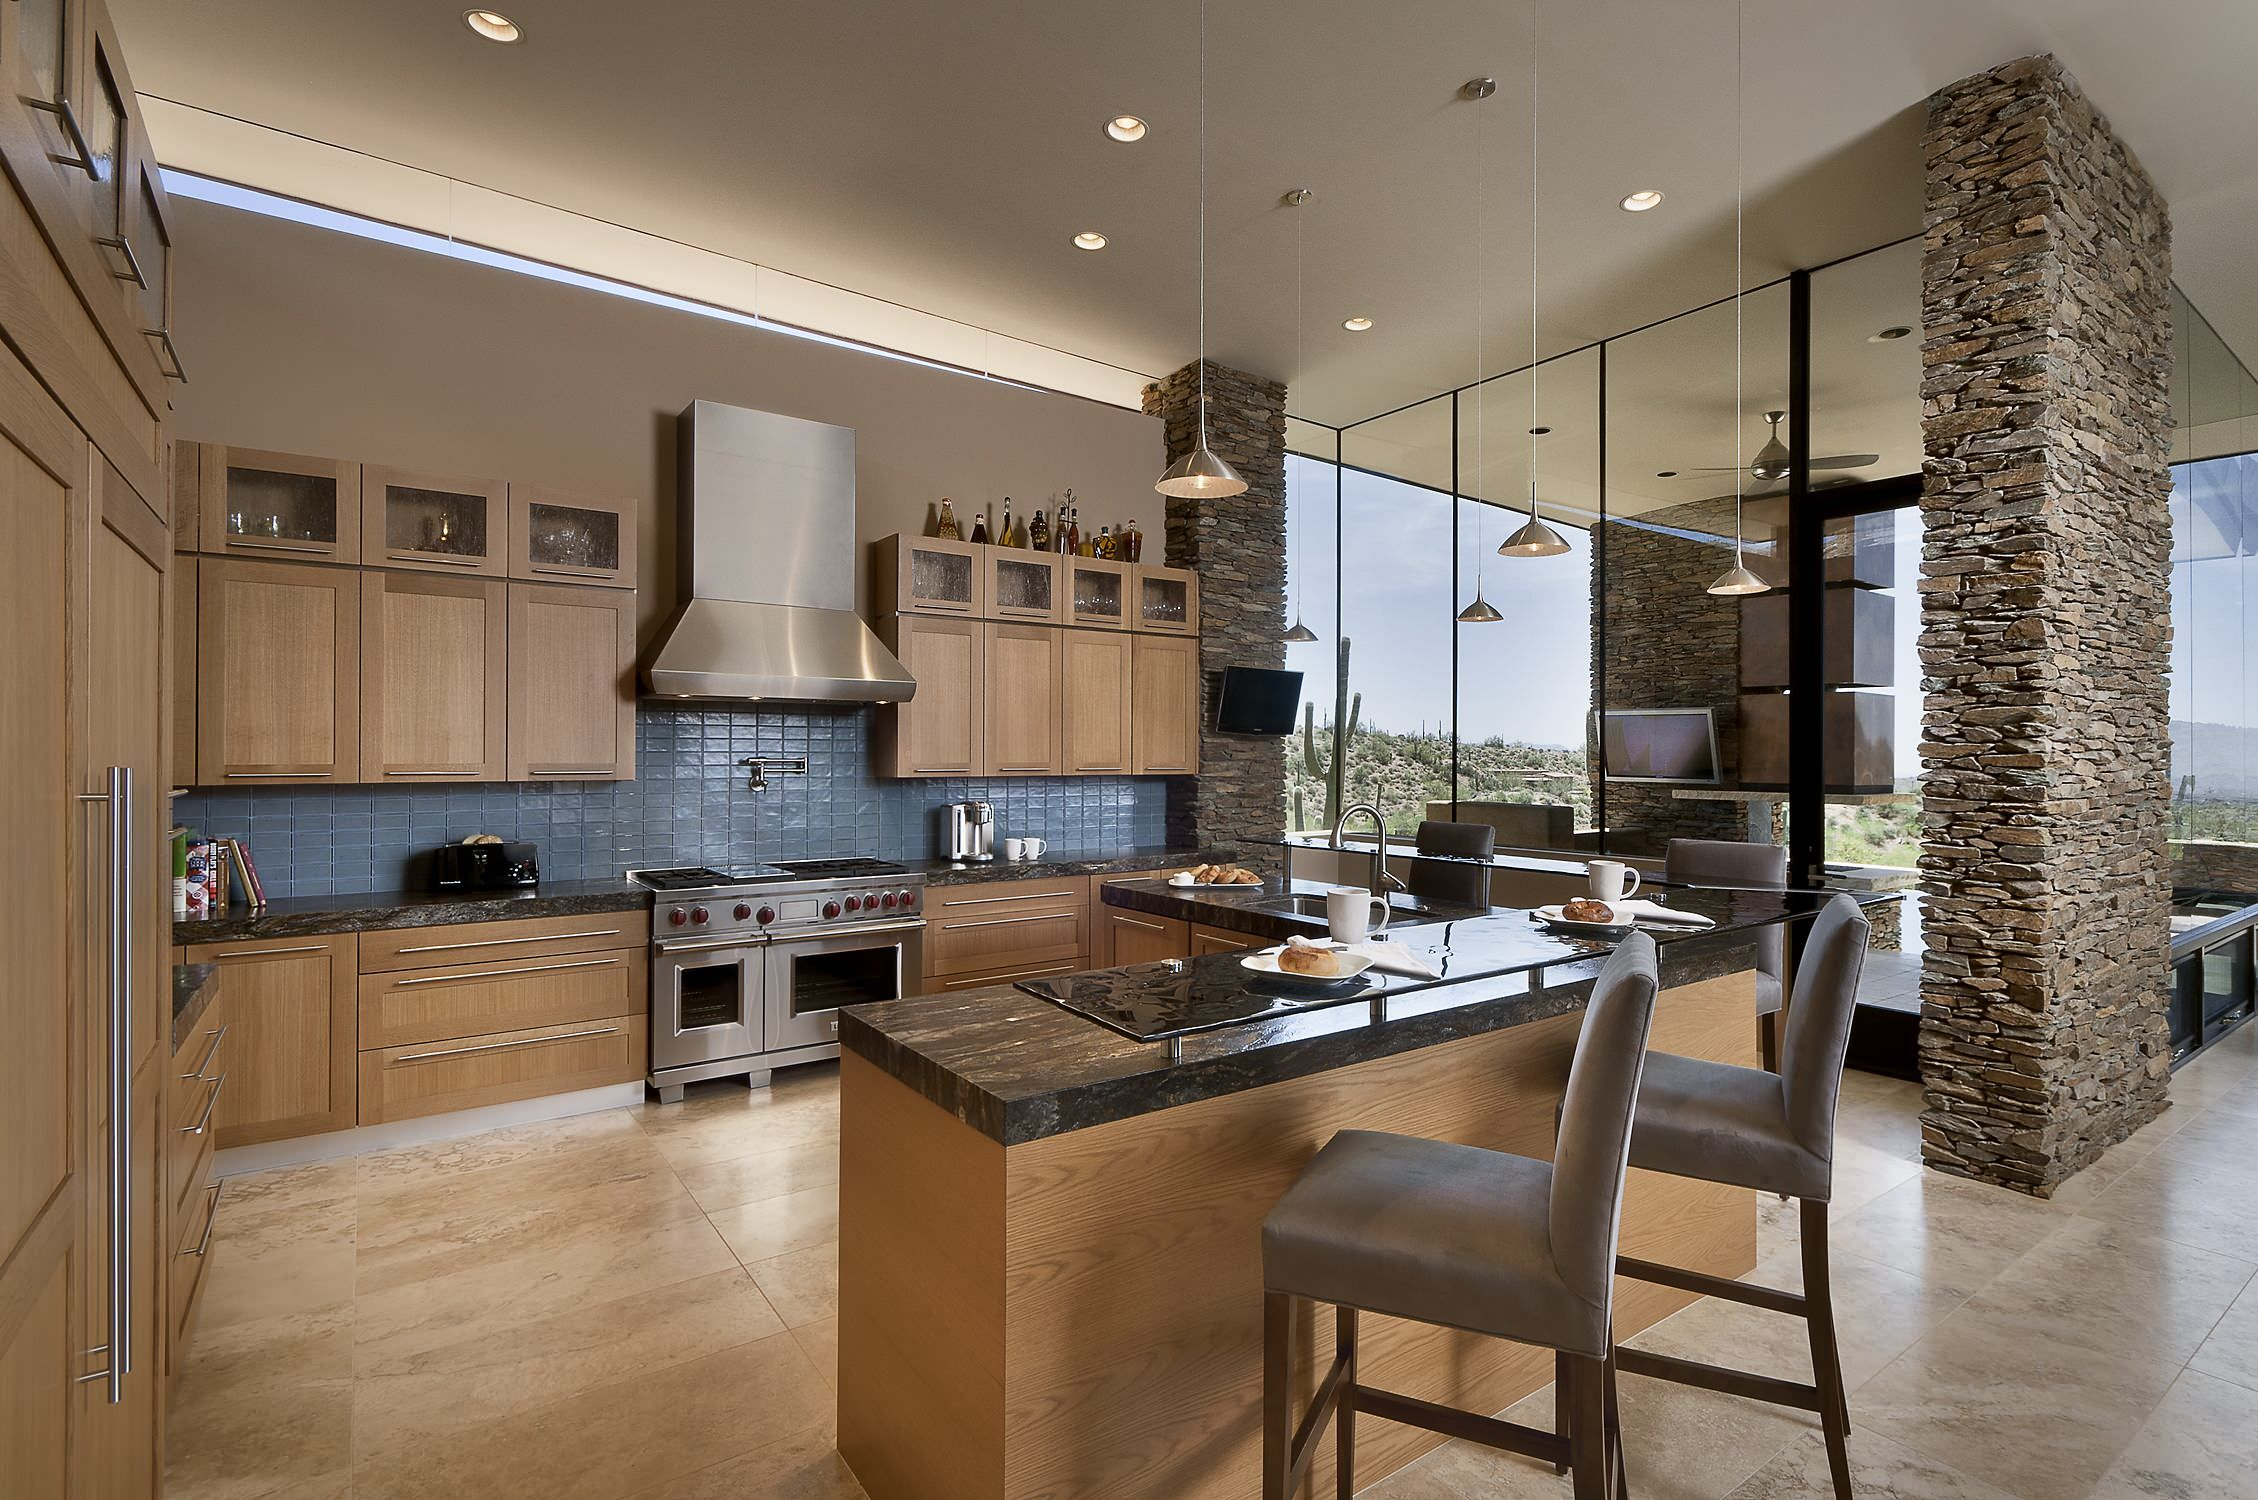 27 Southwest Kitchen Designs and Ideas (With images